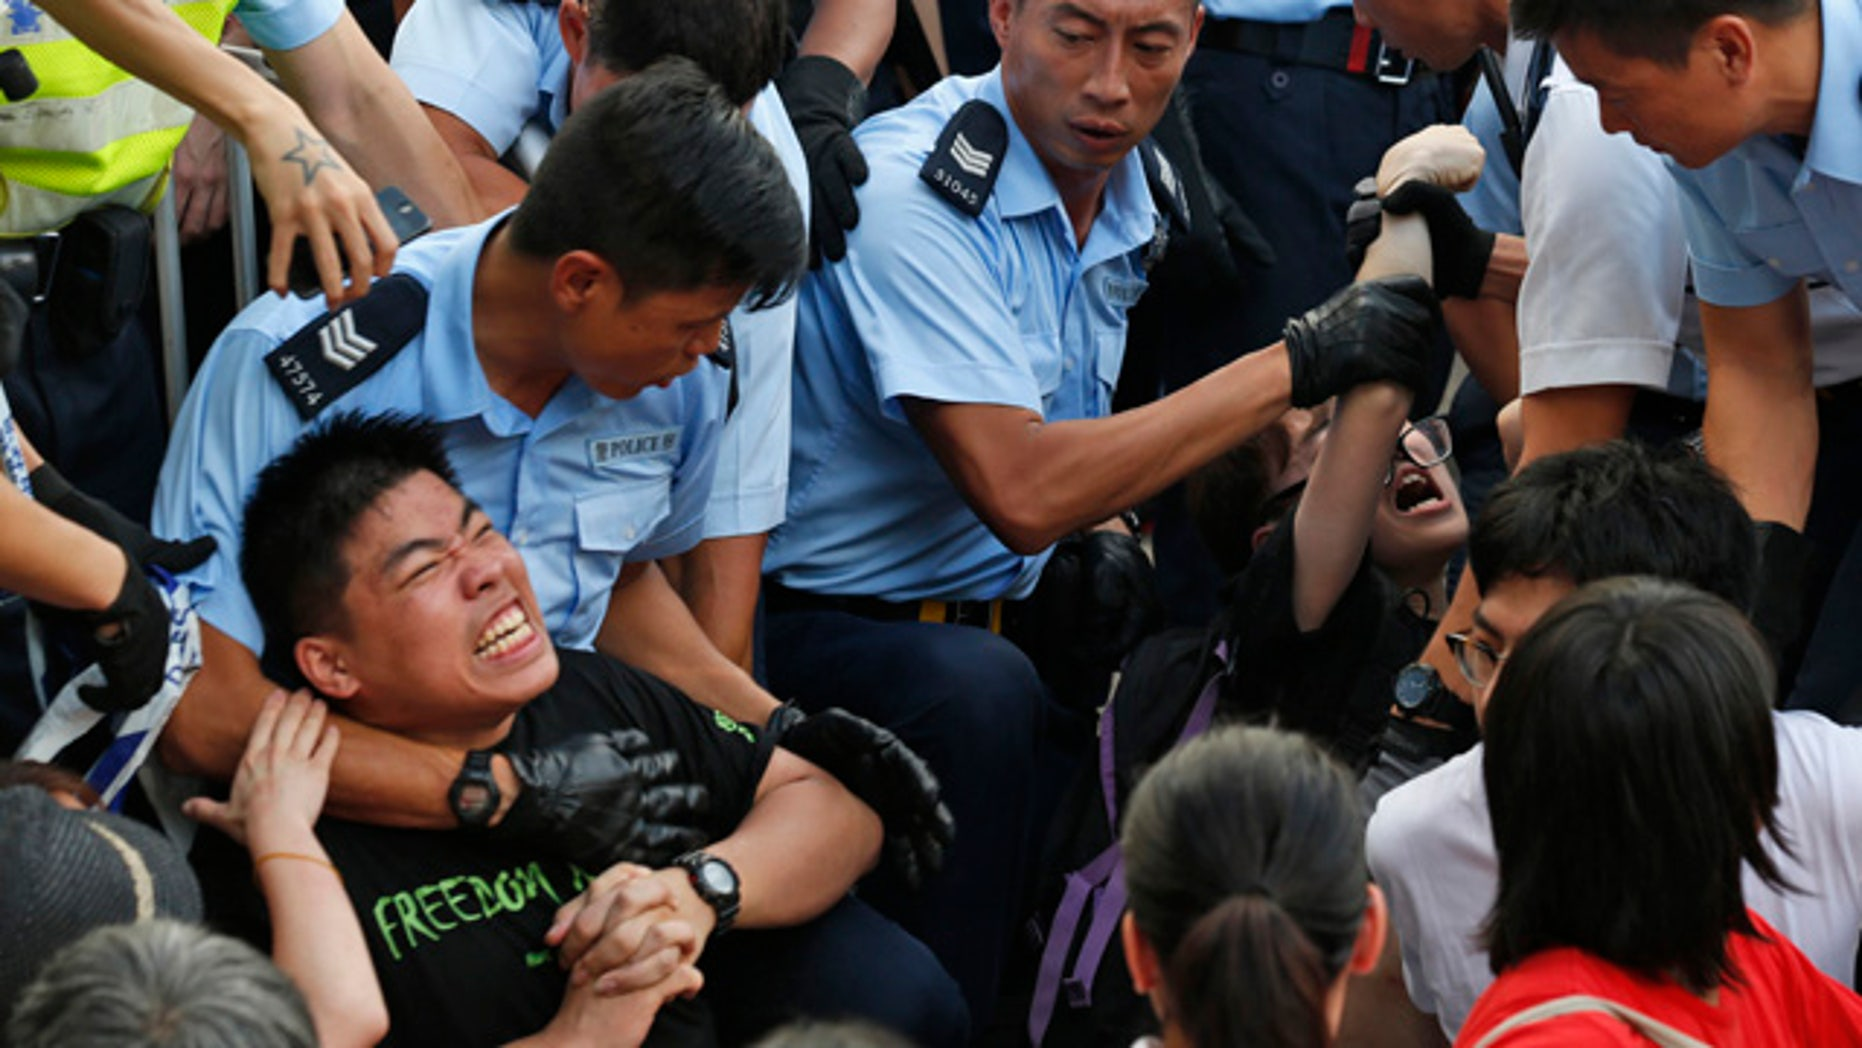 July 2, 2014: Protesters are taken away by police officers after staging a peaceful sit-in overnight on a street in the financial district in Hong Kong. (AP Photo/Kin Cheung)